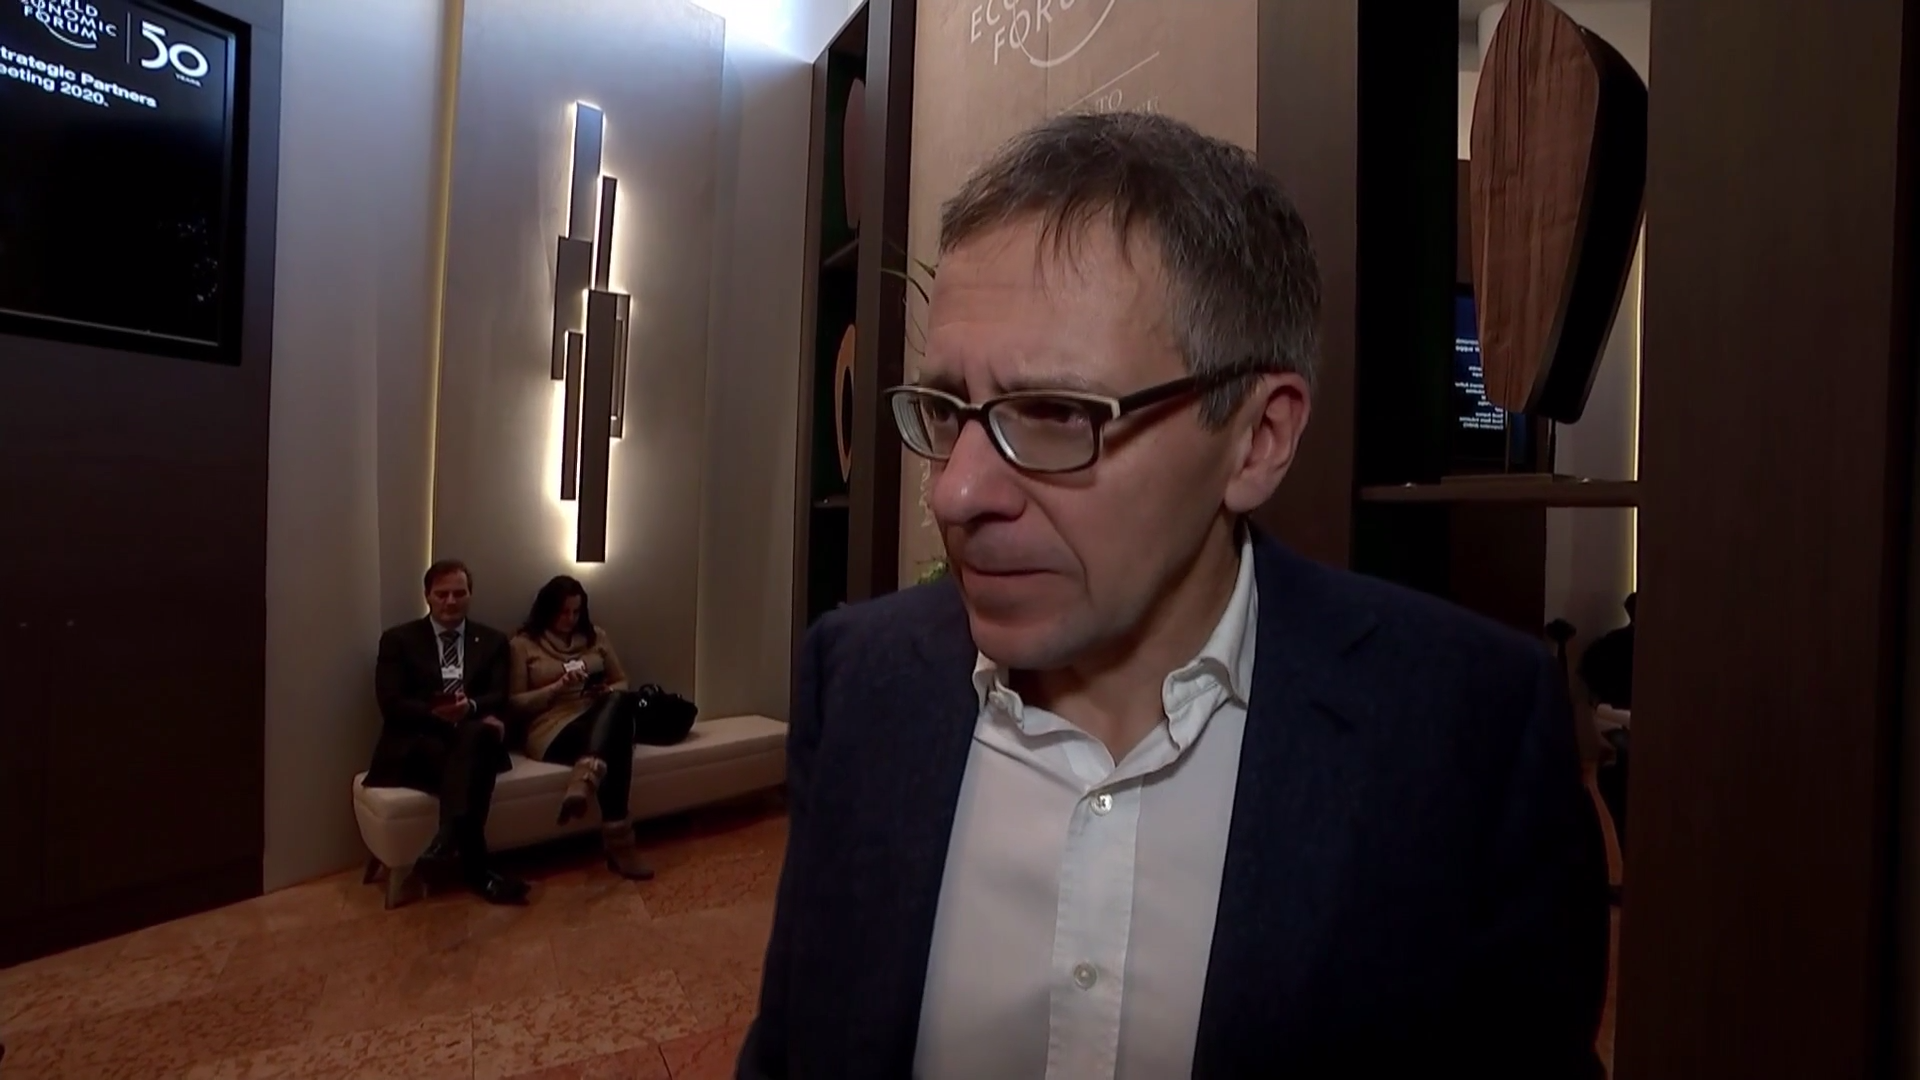 'Trump loves being around rich and powerful people' – Ian Bremmer, Eurasia Group - channel 4